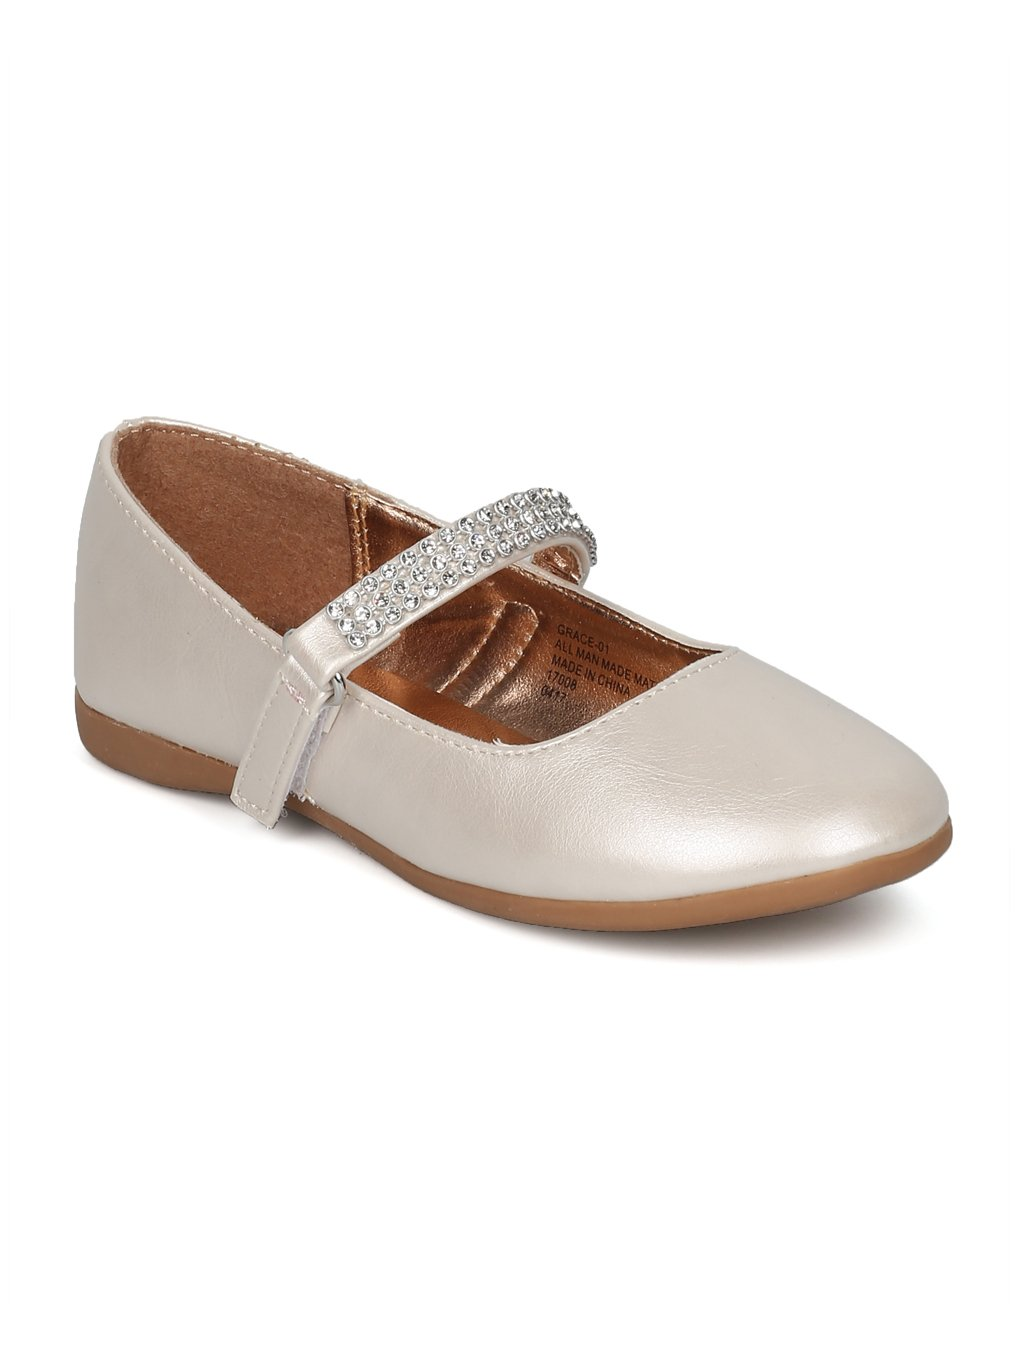 Indulge Grace-01 Girls Round Toe Rhinestone Mary Jane Ballet Flat HC74 - Ivory Leatherette (Size: Toddler 7)